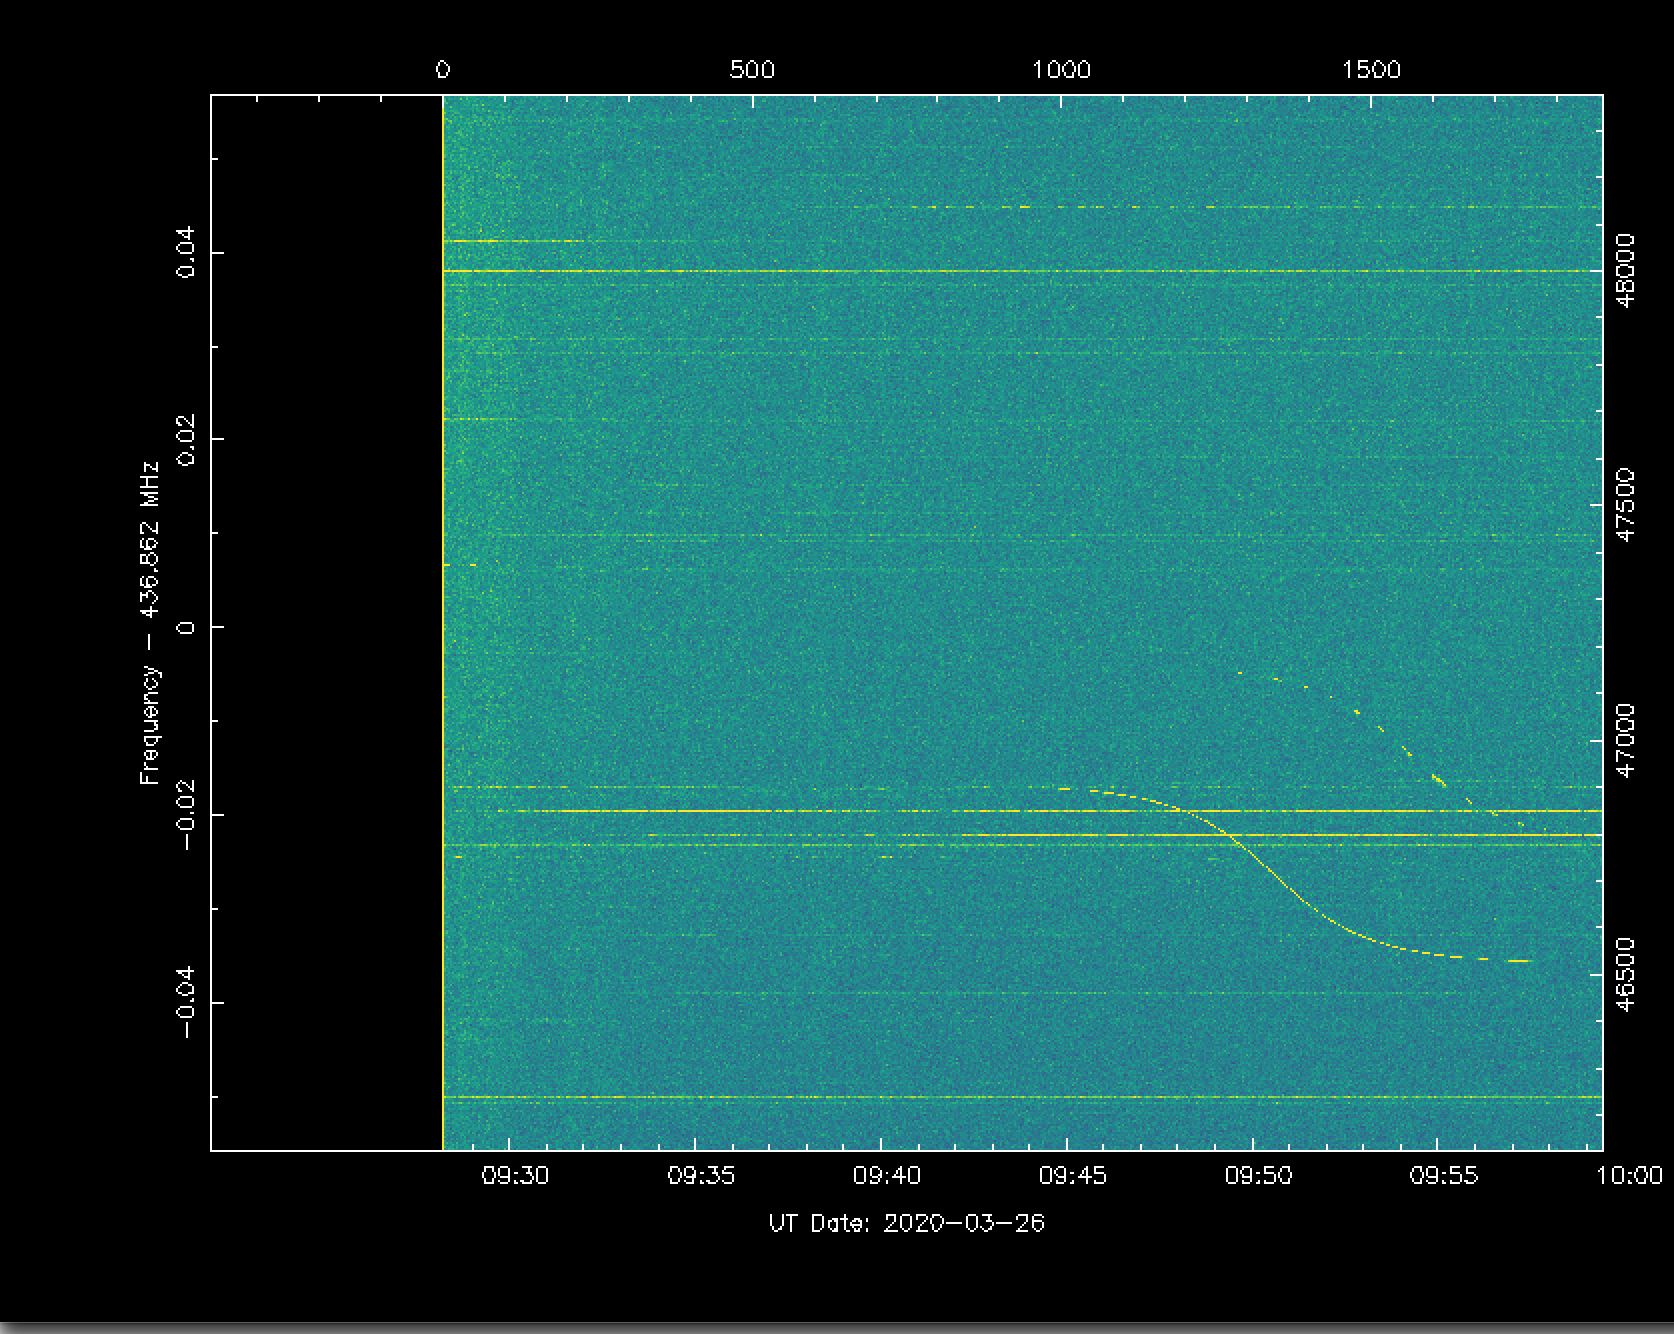 Fairly obvious CW signal.